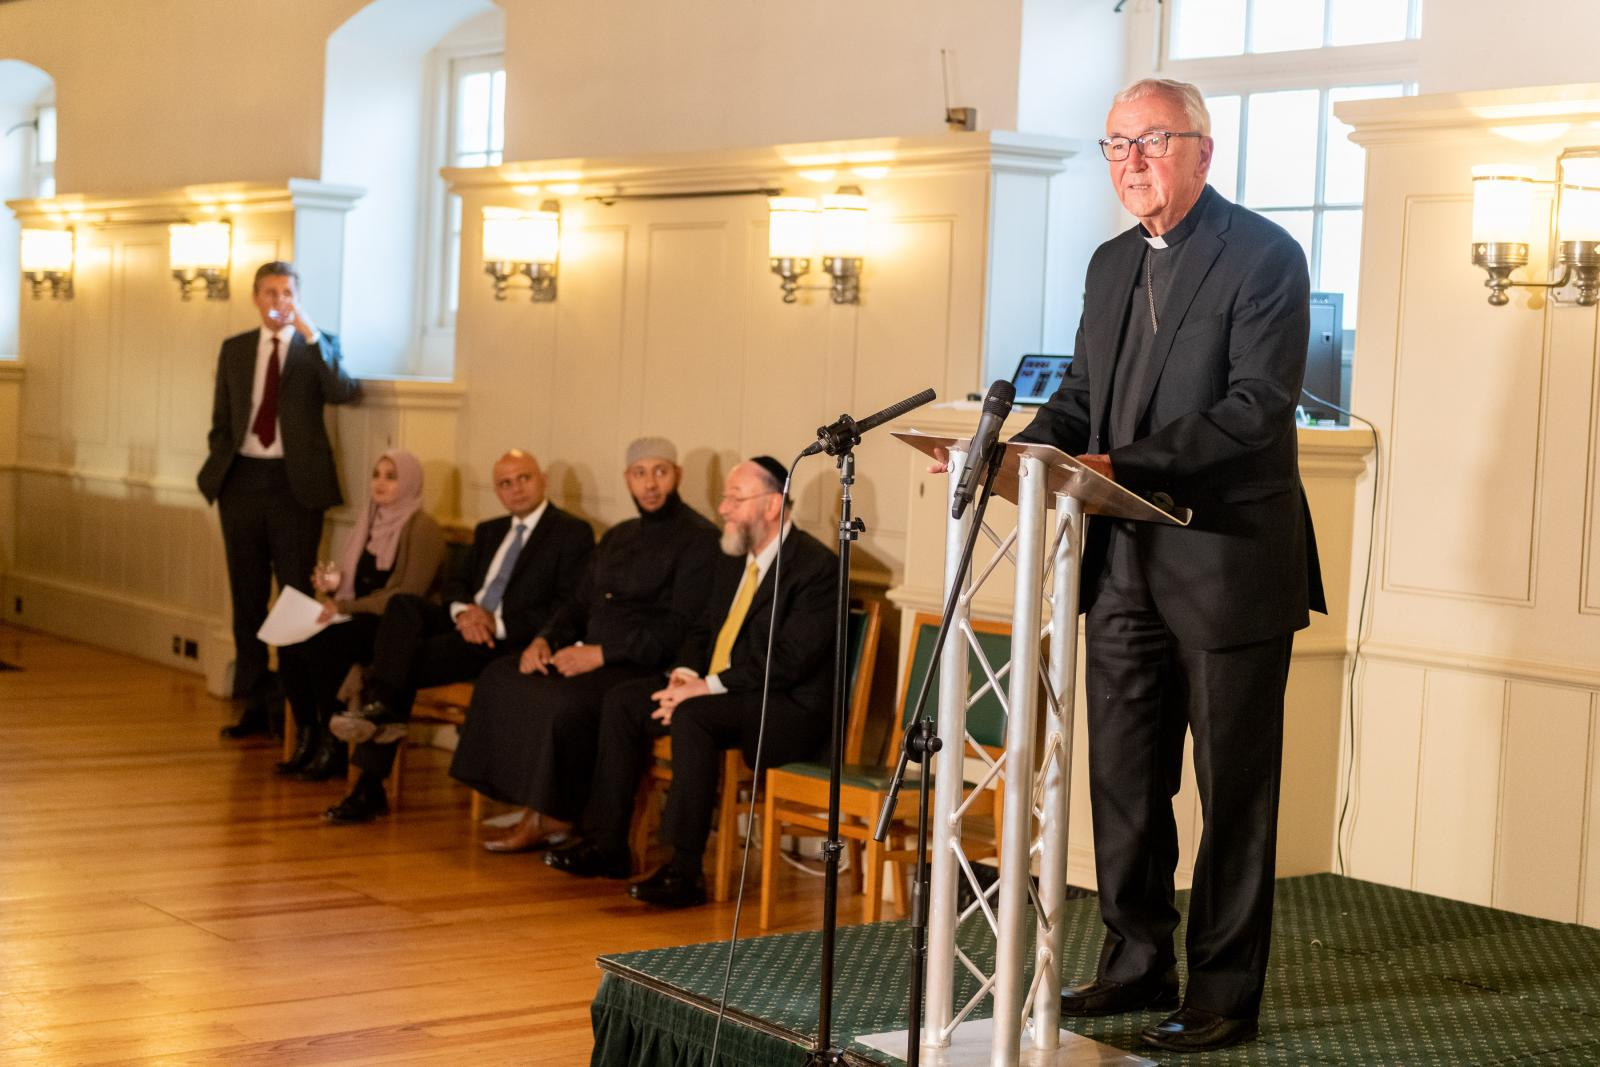 Interfaith celebration at the Tower of London organised by the Naz Legacy Foundation - Diocese of Westminster